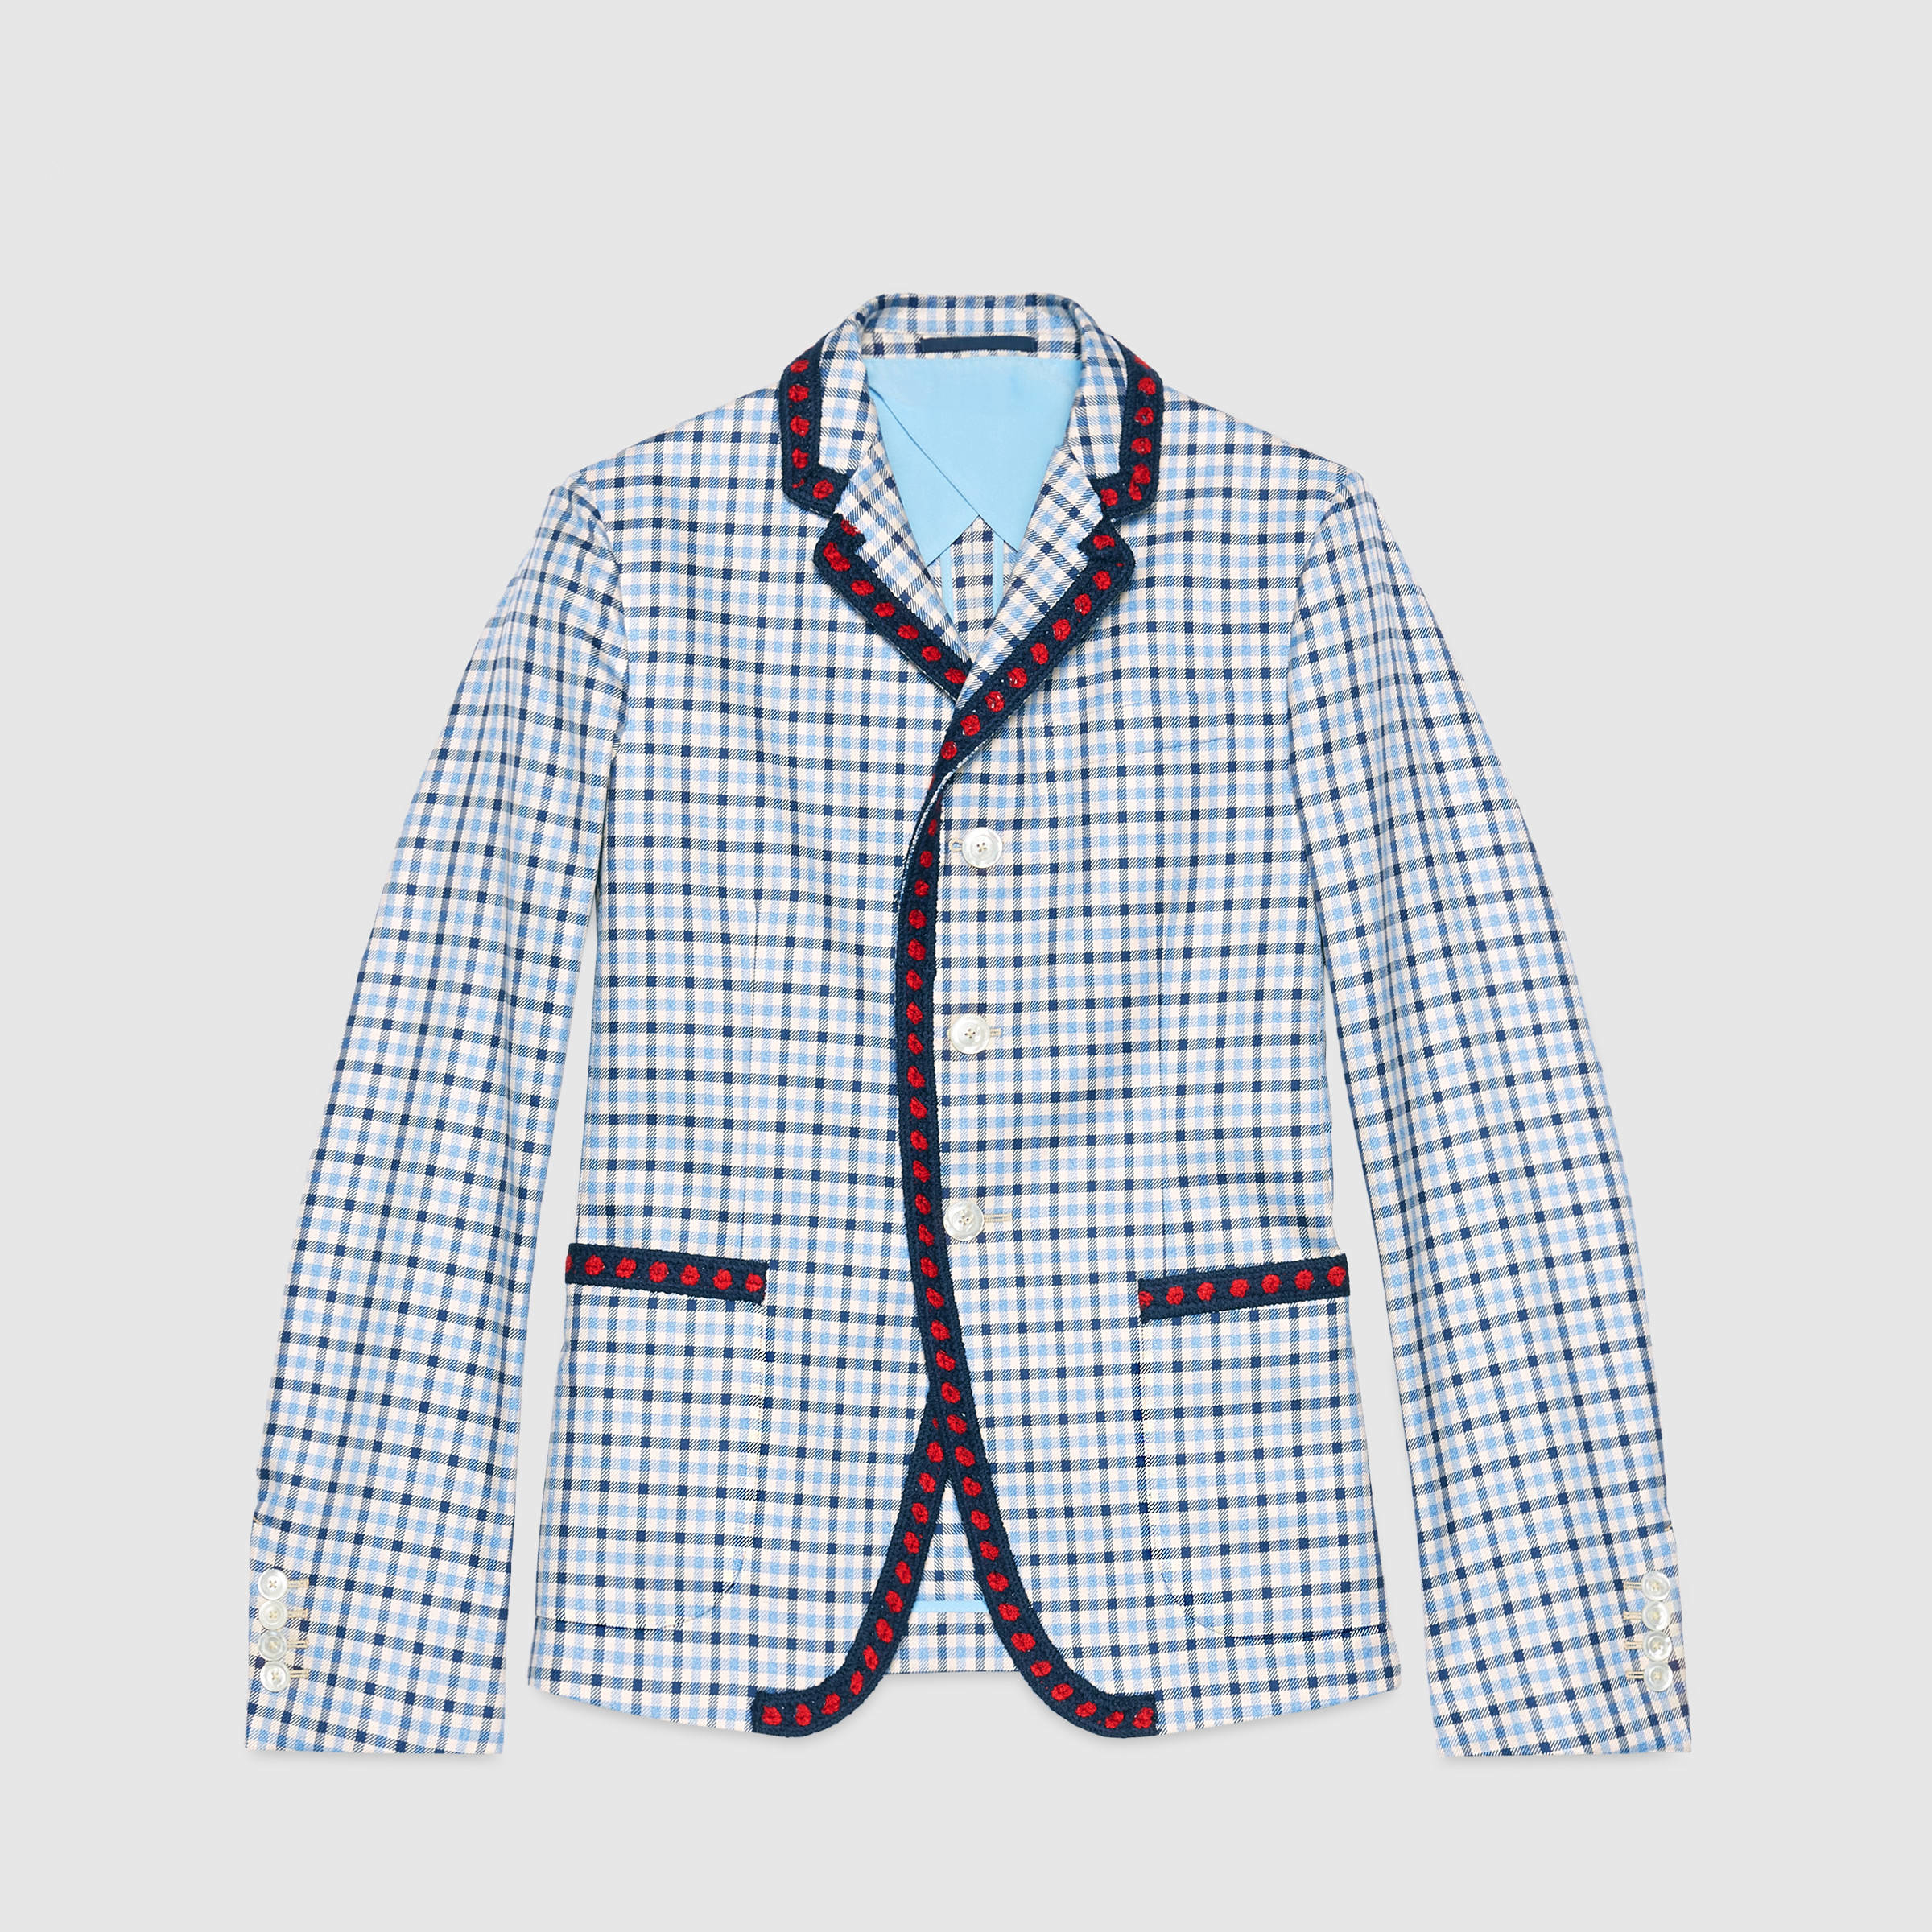 9a54ef66b Gucci Iris Check Cotton Twill Jacket in Blue for Men - Lyst